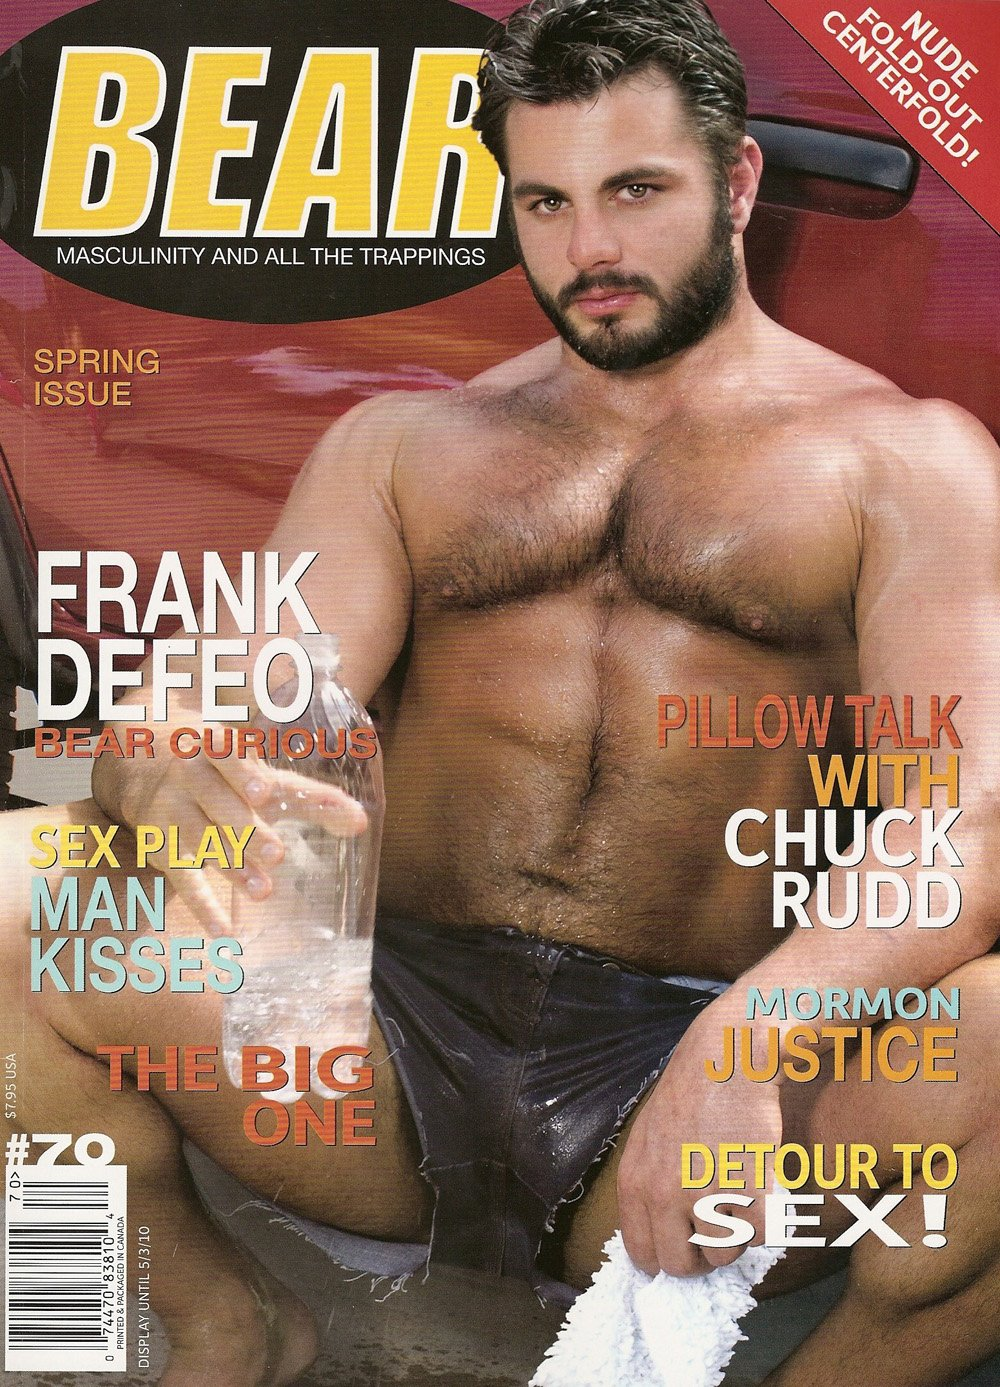 bear magazine 019 Note: those of you who insist that Jake is gay are NUTS. Seriously?